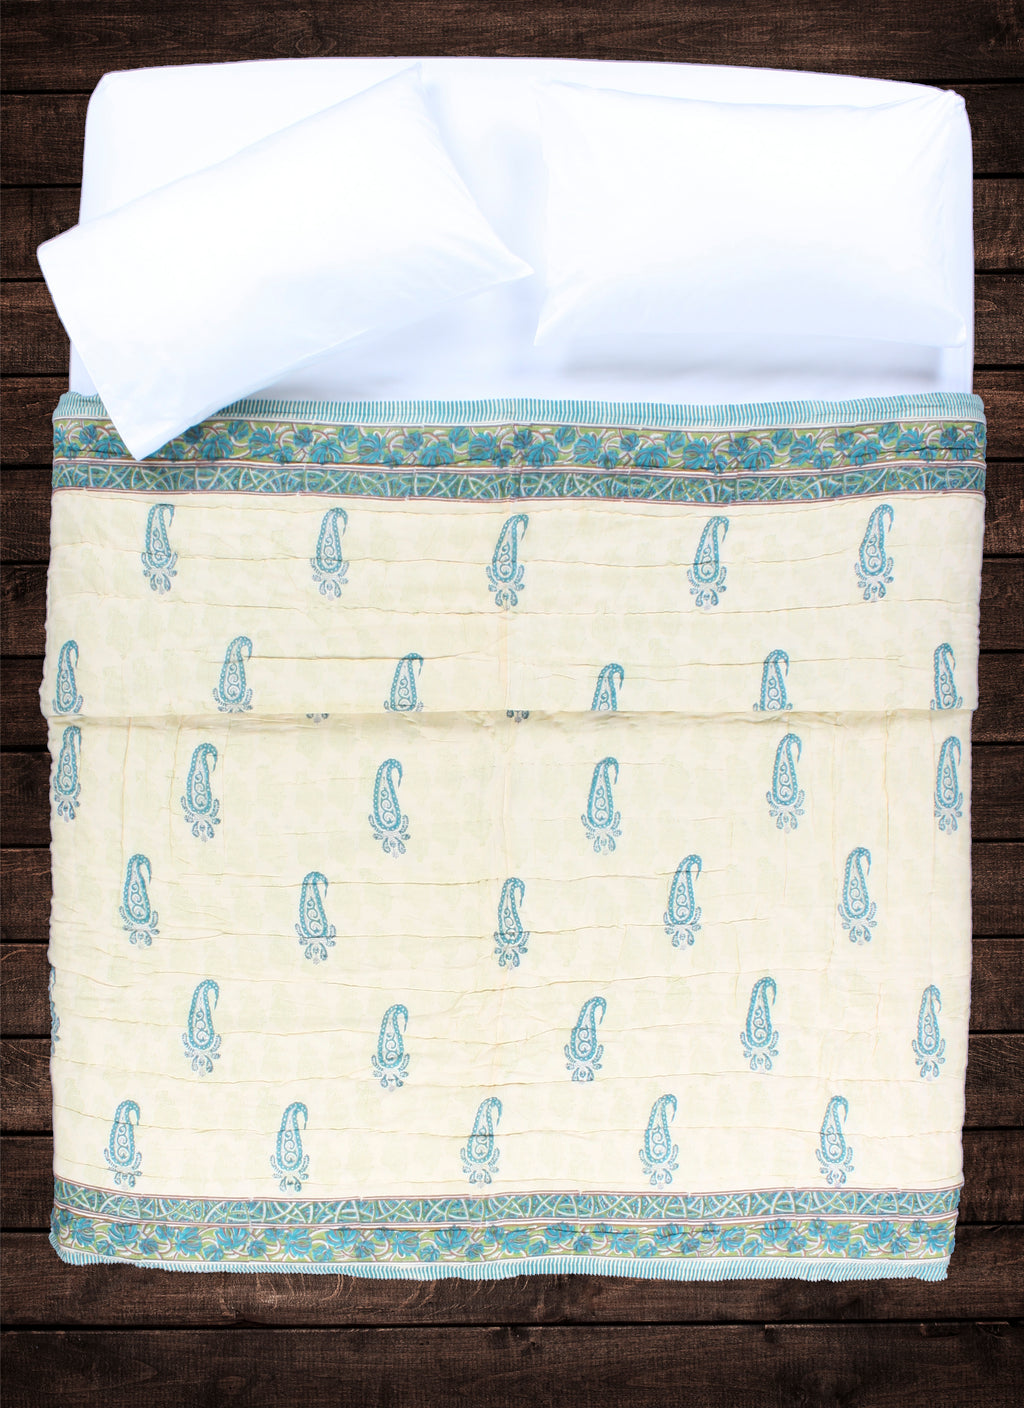 Shop_QueenQuilt-SunDrenchedPaisley_MavenAndKit_1